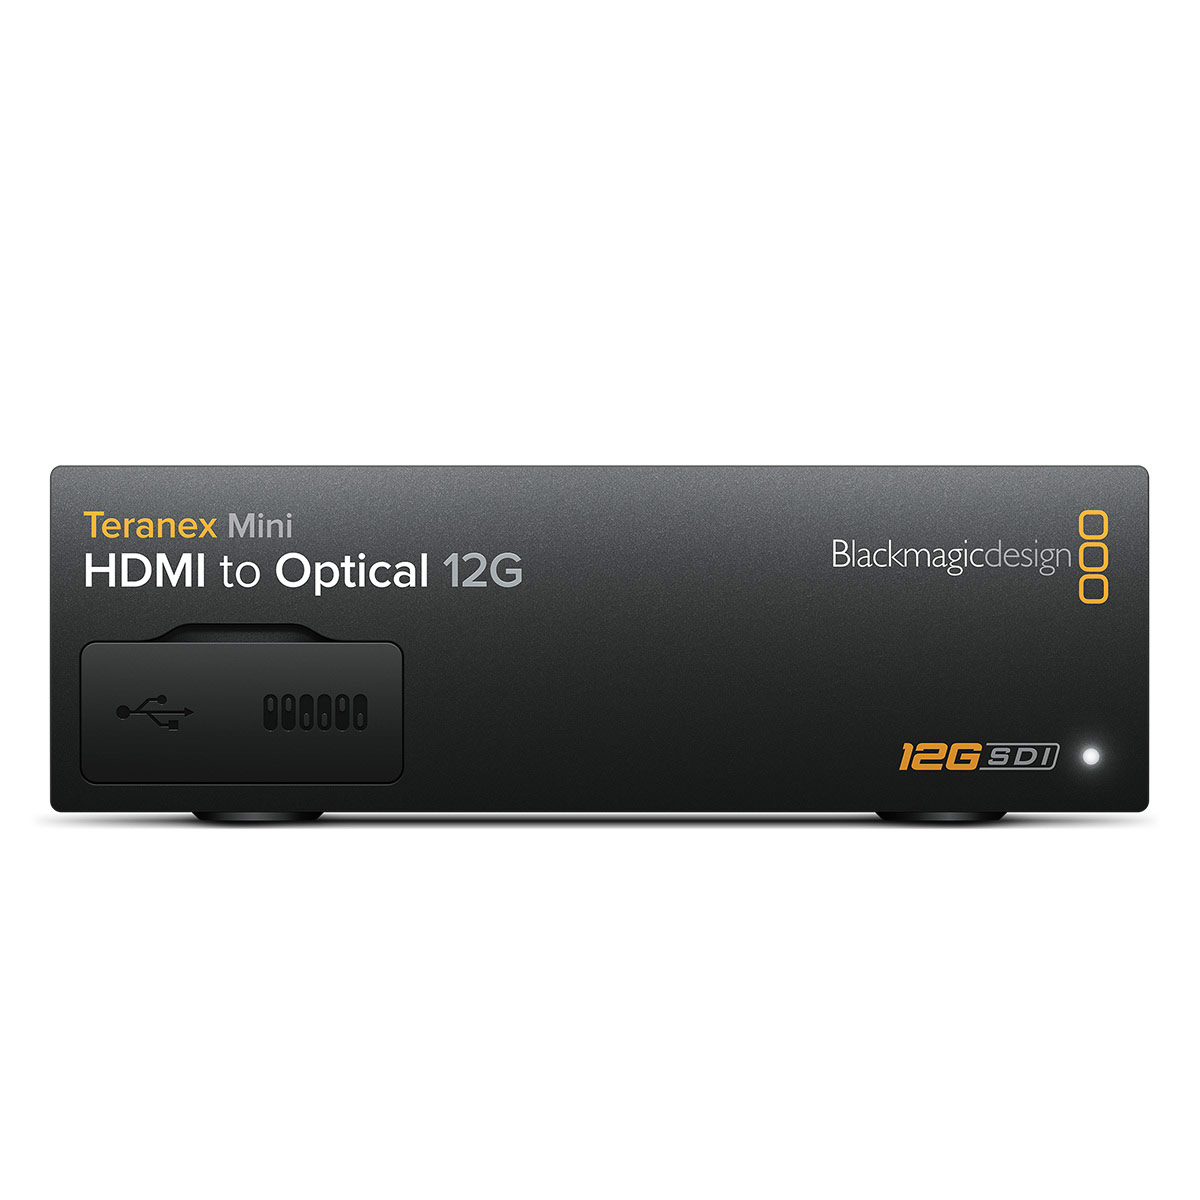 Blackmagic Teranex HDMI to Optical 12G